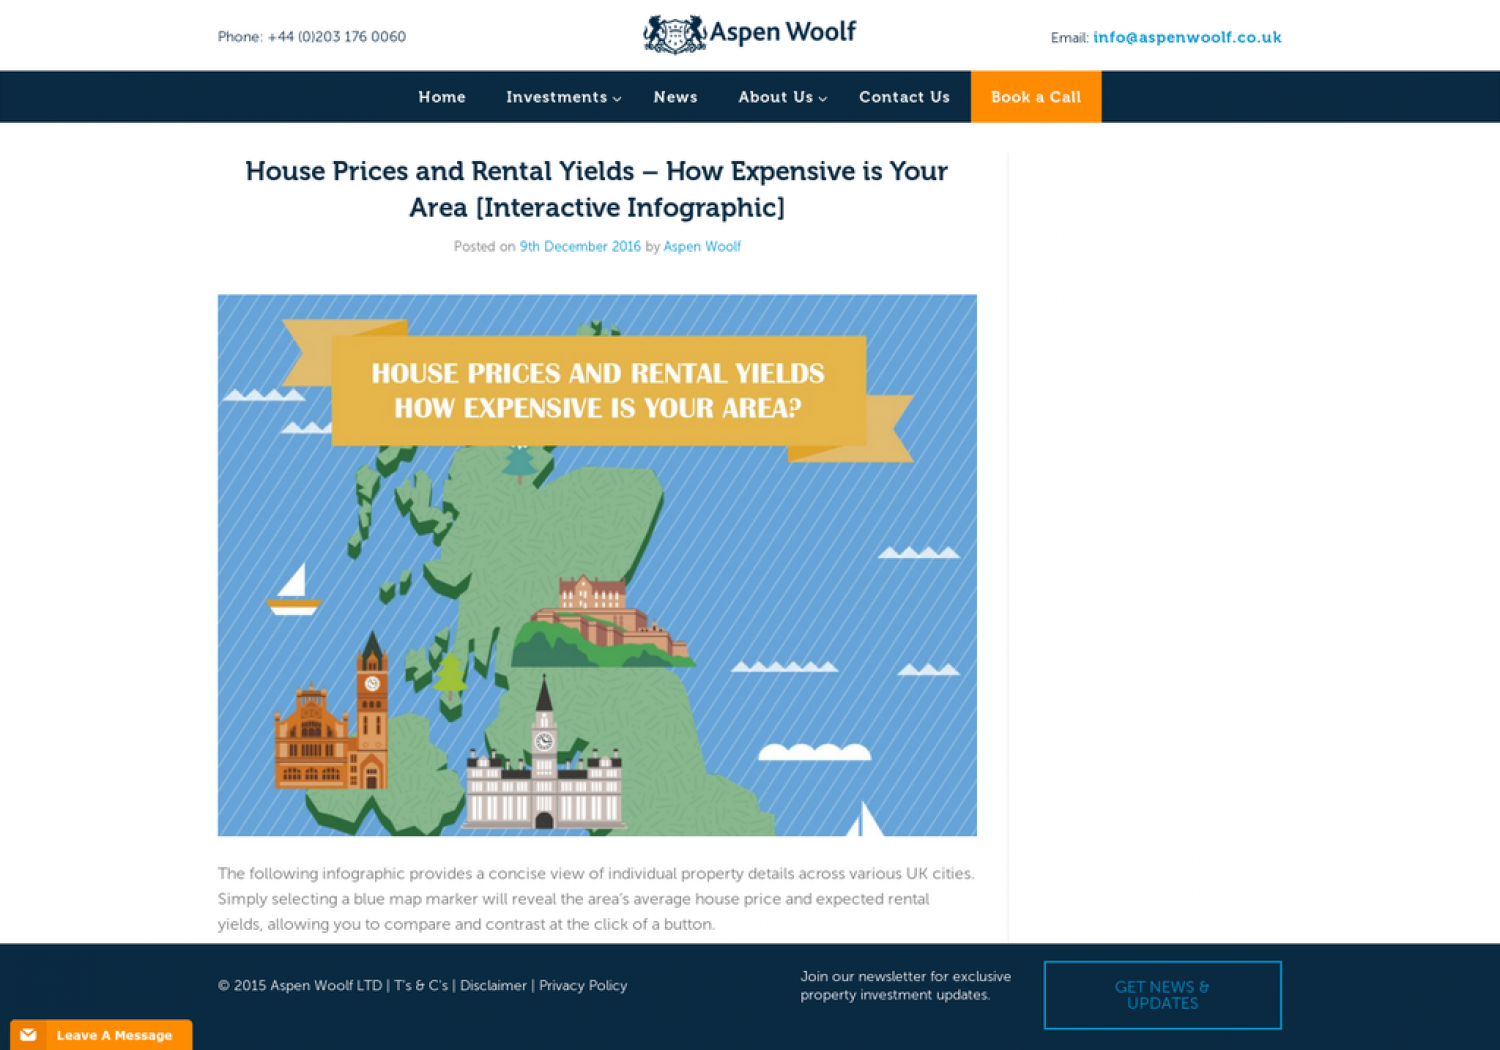 House Prices & Rental Yields - Interactive Map Infographic